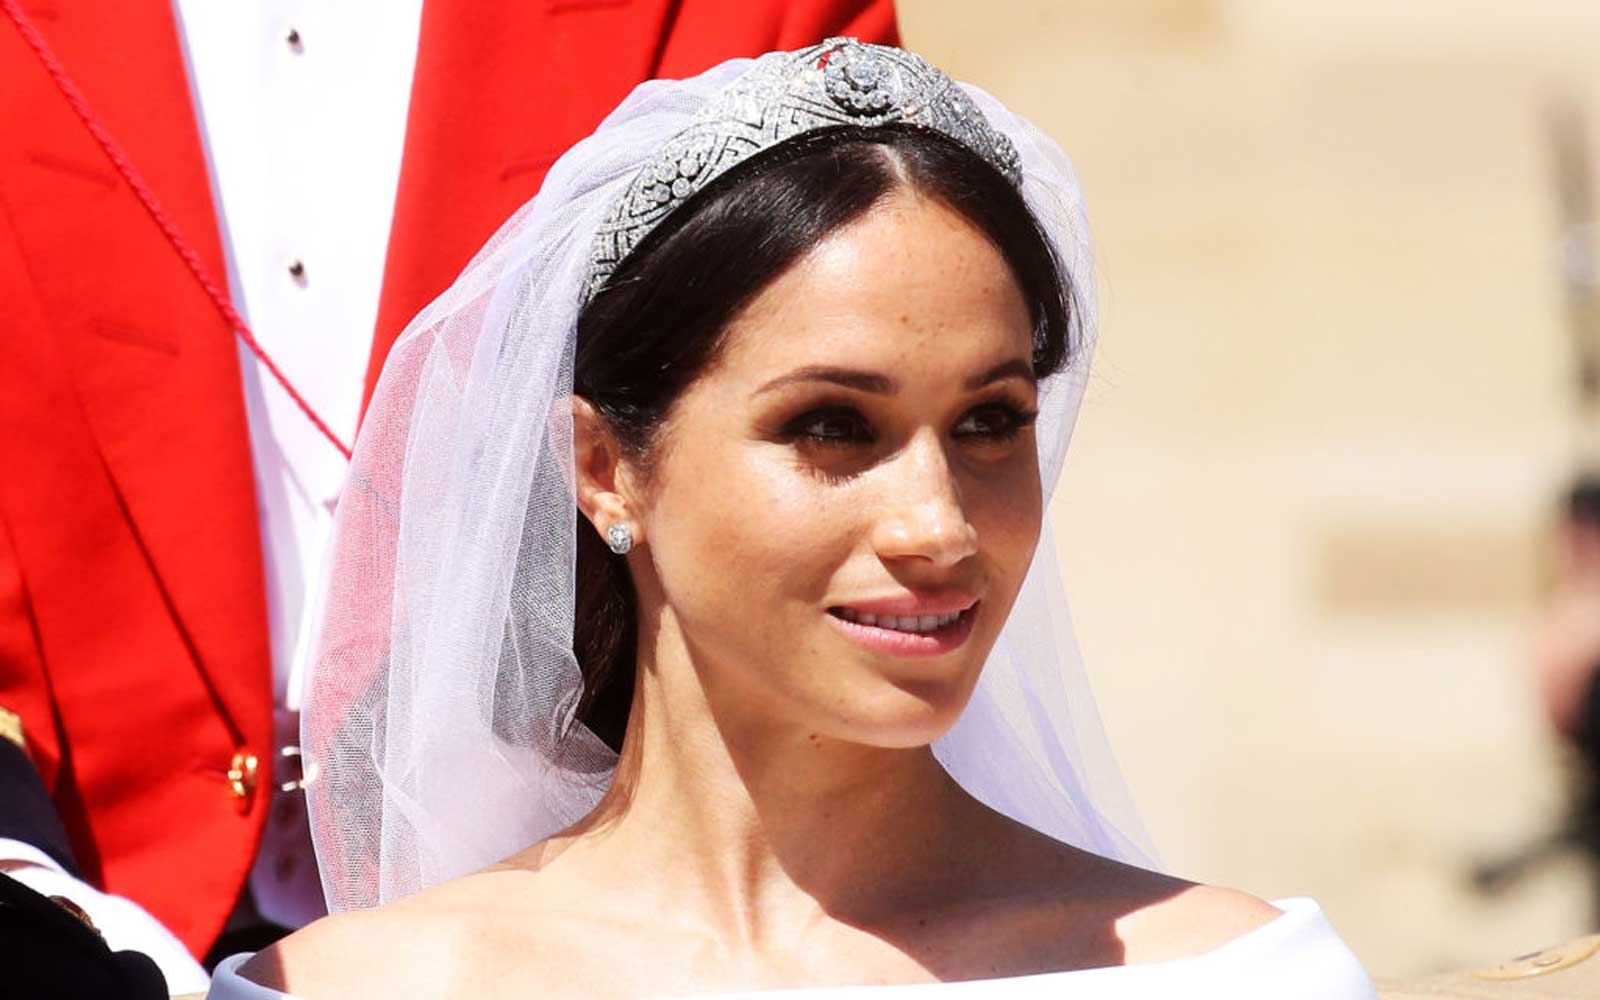 Meghan Markle Wrote About Her Dreams of Being a Princess, 4 Years Before Becoming One